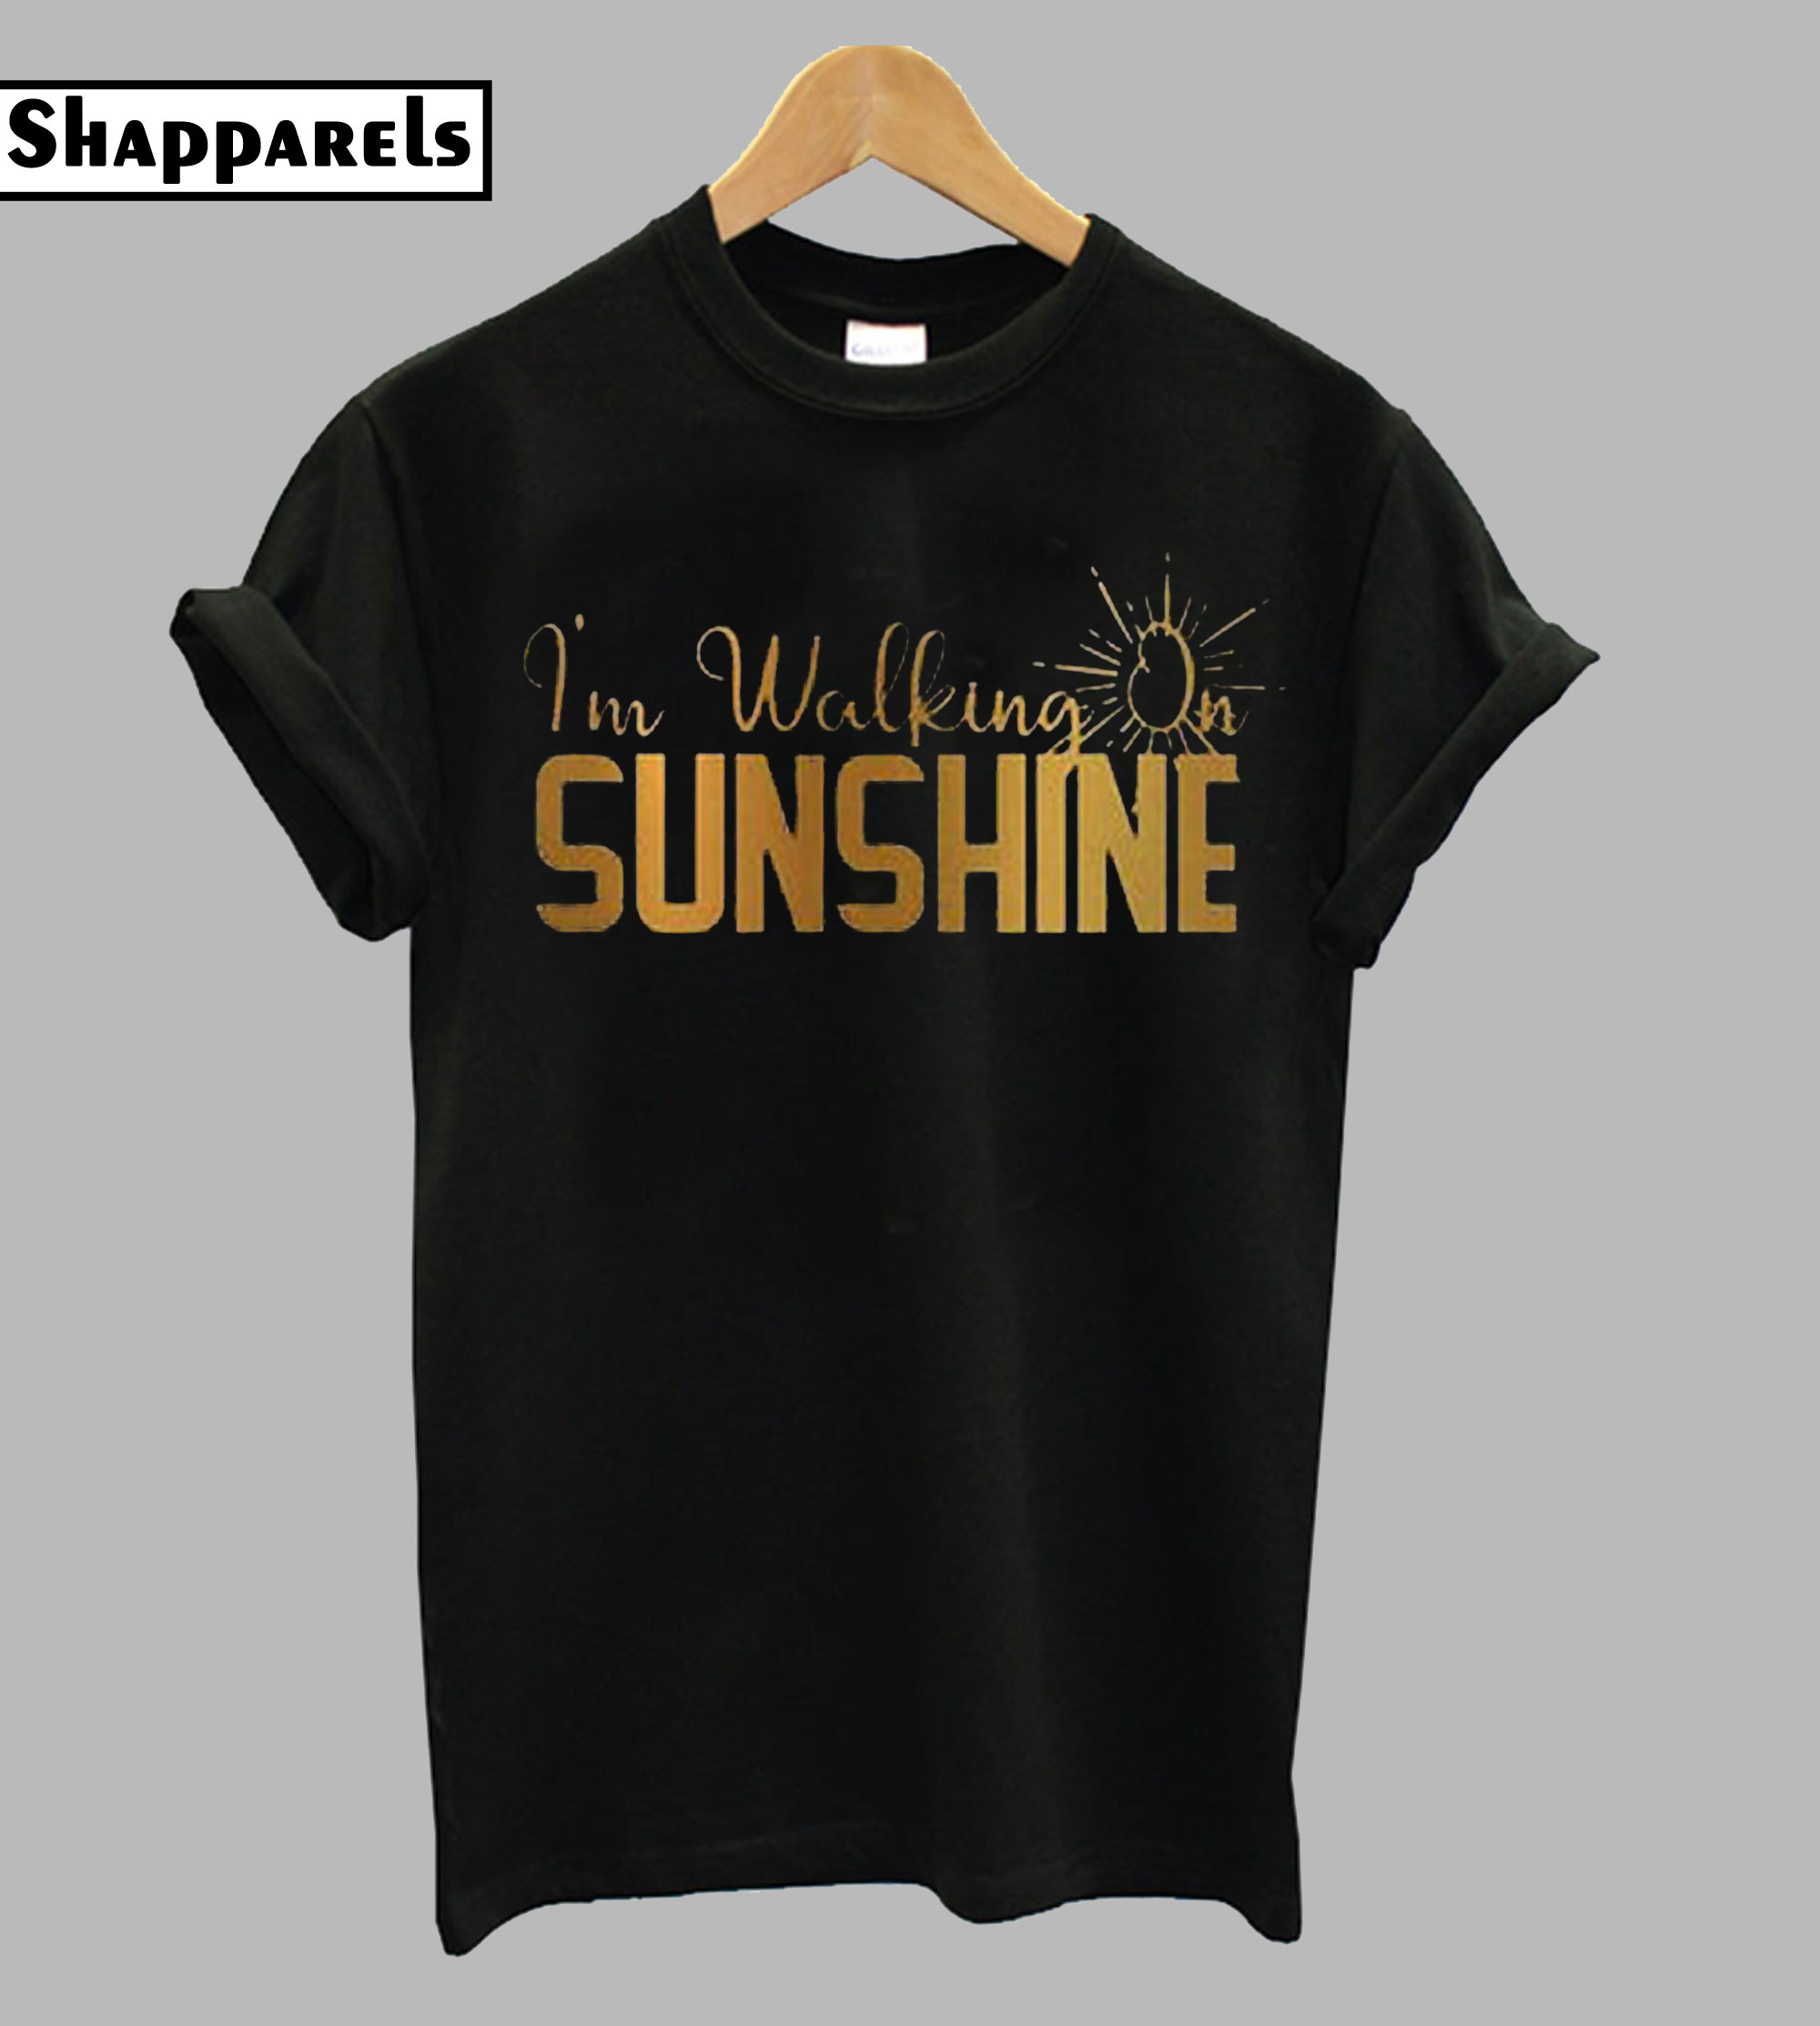 I'm Walking On Sunshine T-Shirt